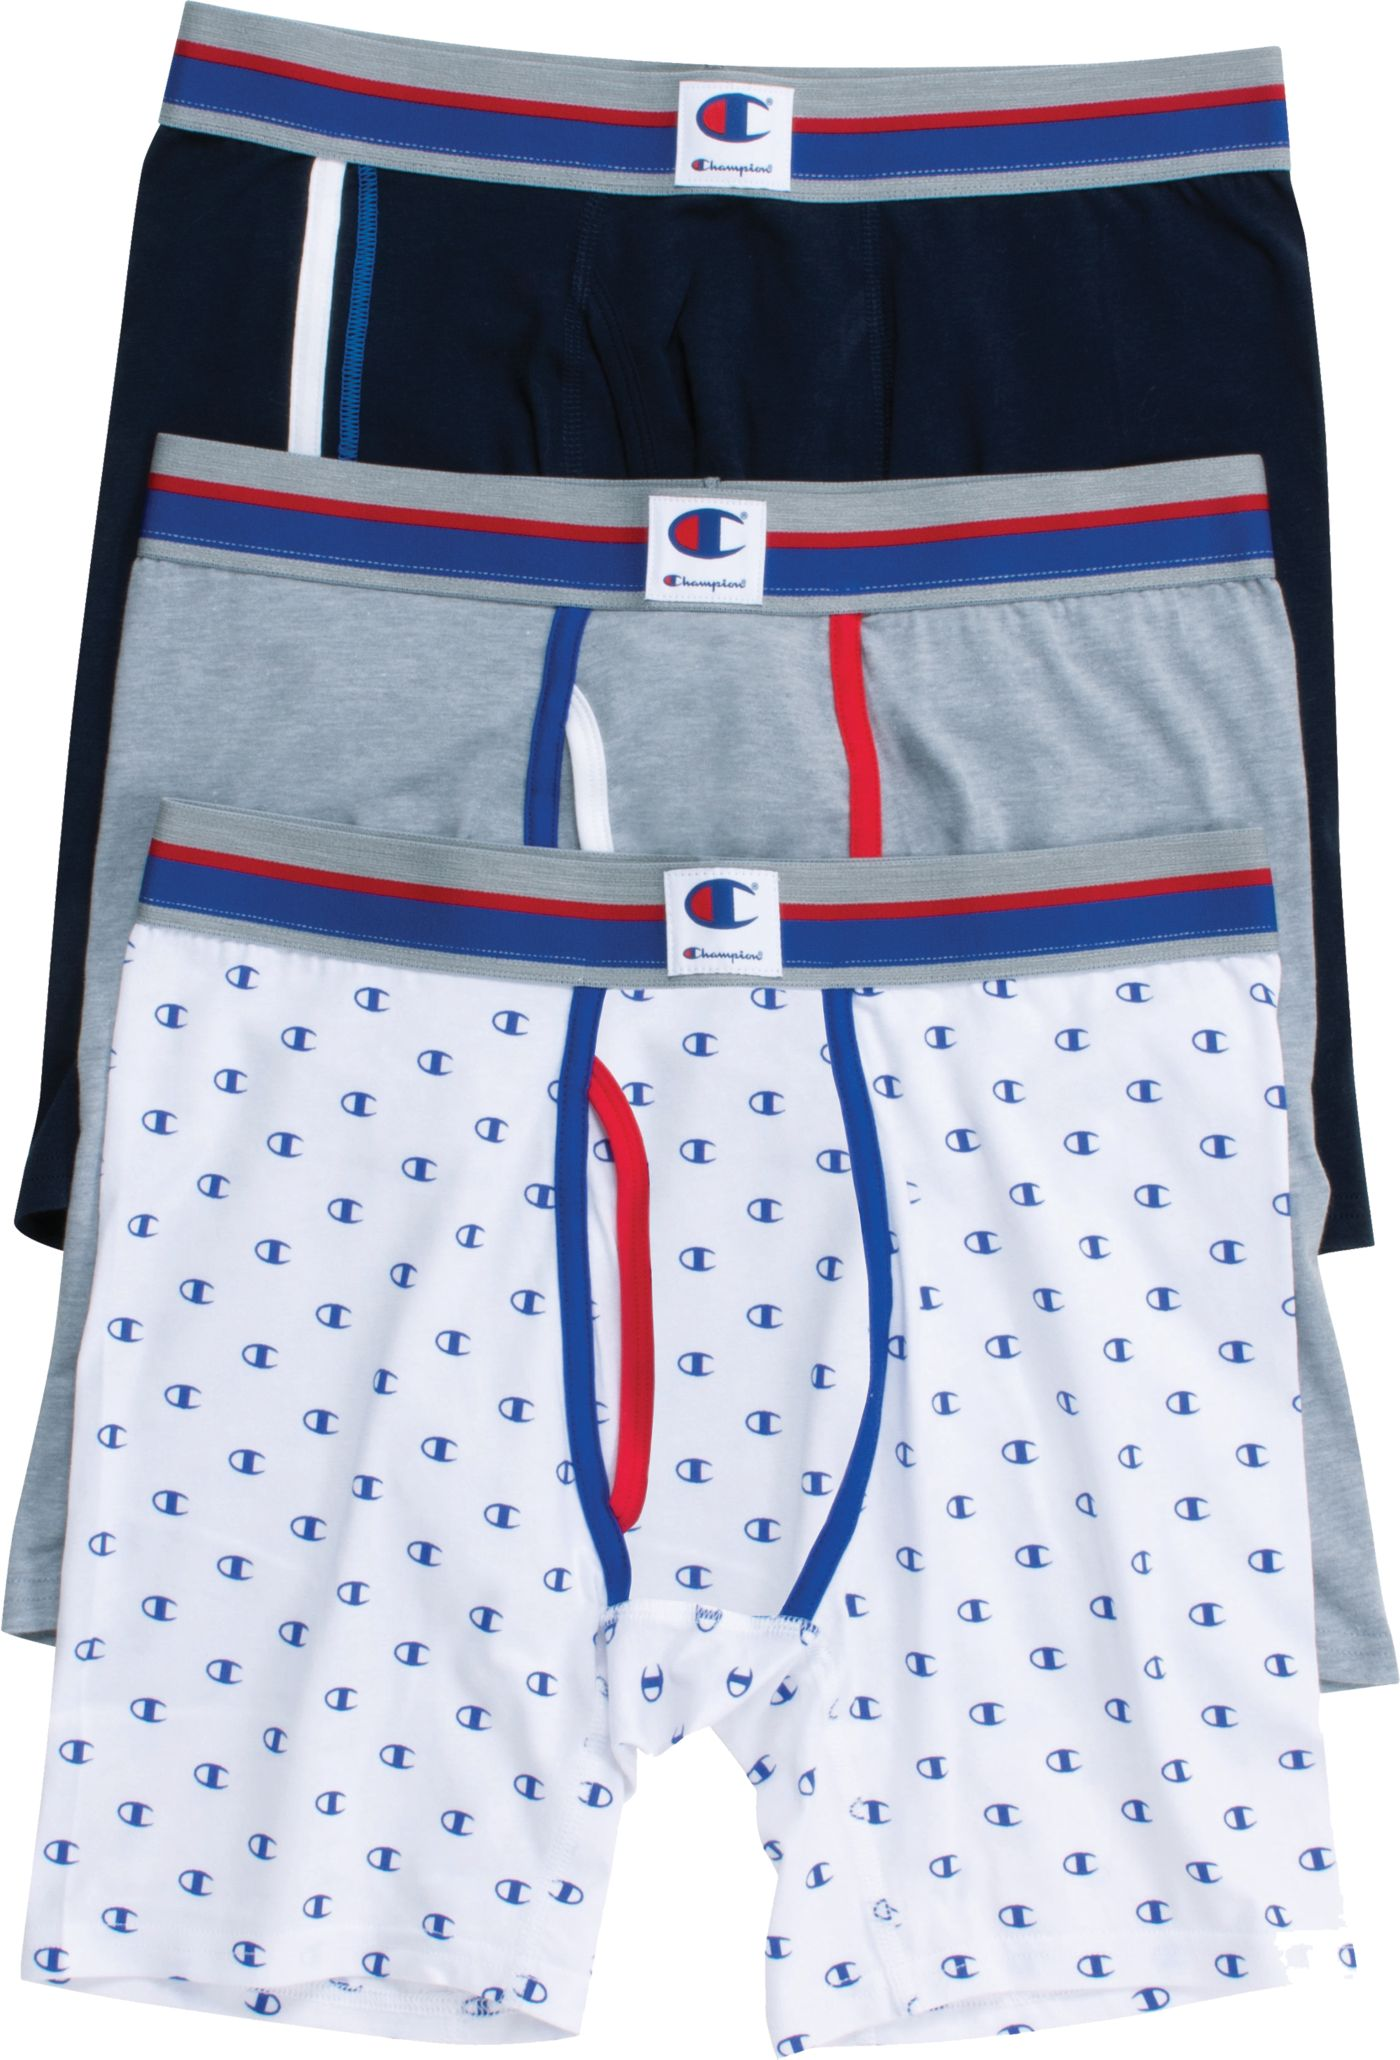 Champion Men's Everyday Comfort Logo Boxer Briefs – 3 Pack